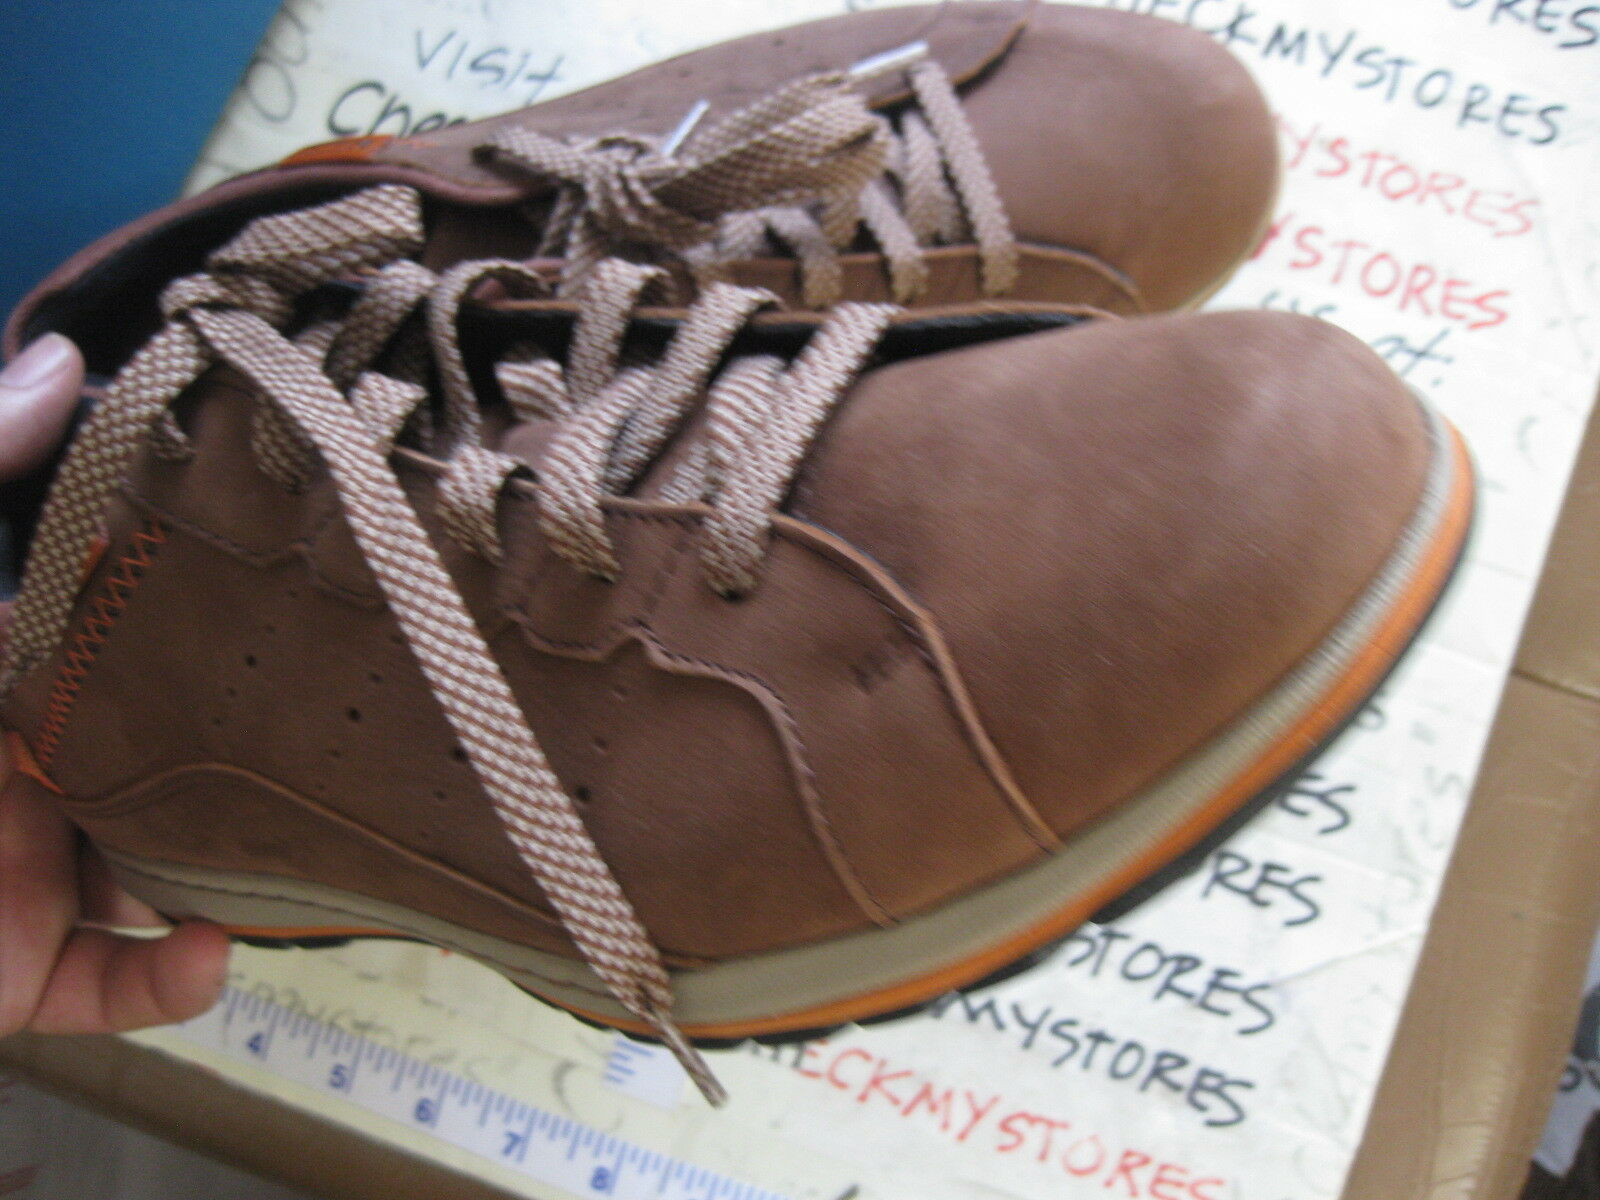 NEW LEATHER COLUMBIA THREE PASSES 5289 281 LEATHER NEW CASUAL COMFORT SHOES CHOOSE SIZES 5d5965